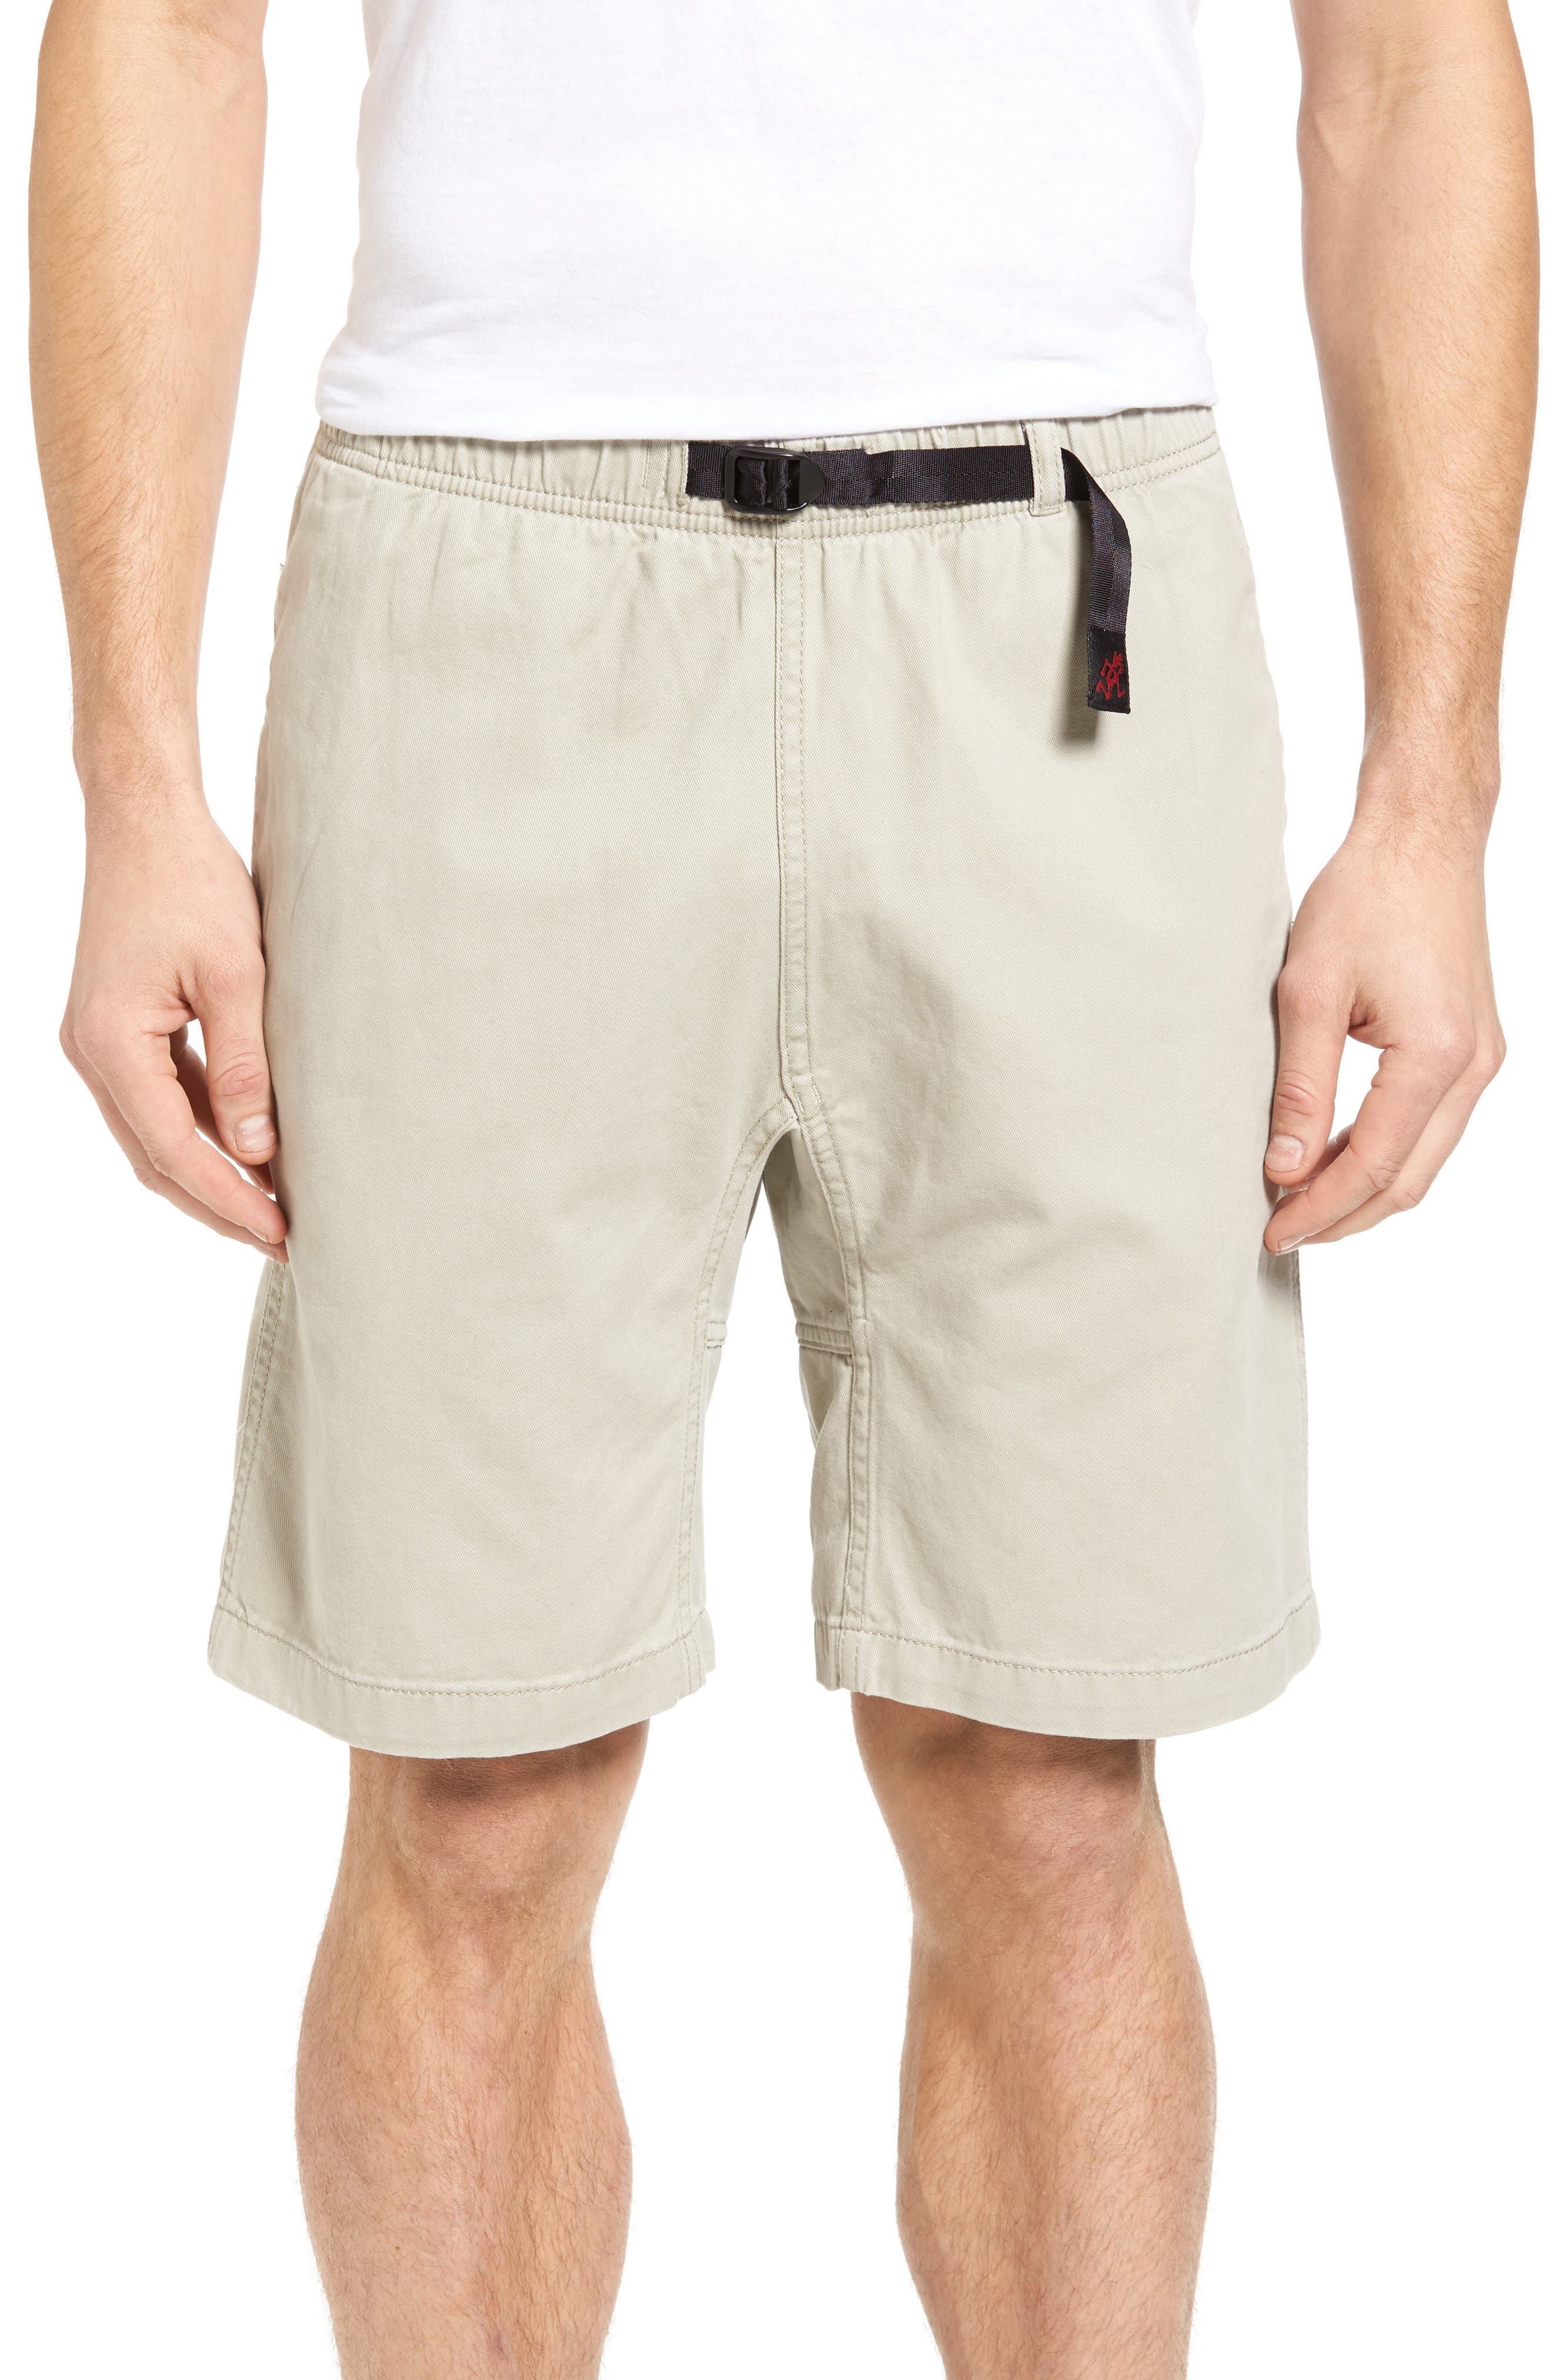 Rockin Sport Shorts,                             Alternate thumbnail 8, color,